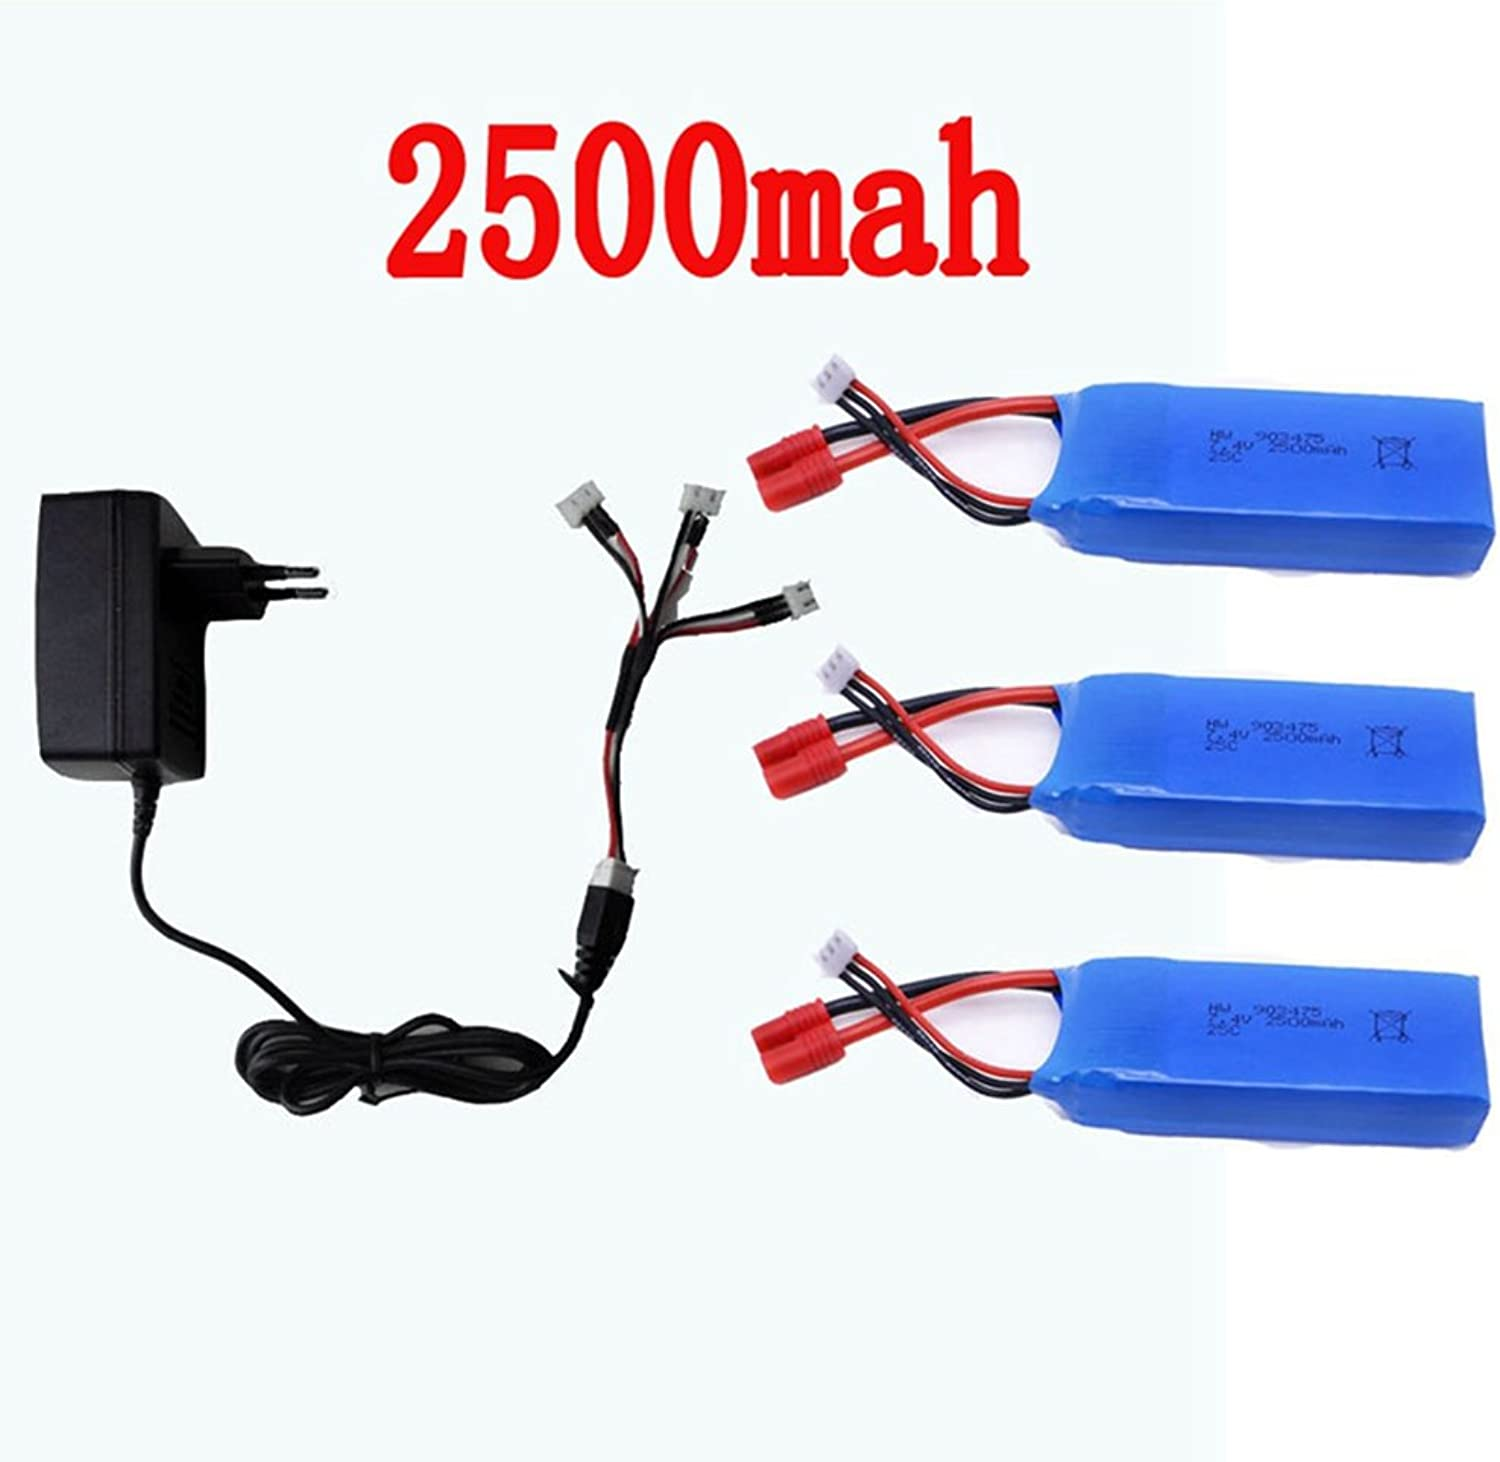 TSPFJX Syma X8C X8W X8G X8HC X8HW X8HG RC Drone Quadcopter Spare Parts 3 PCS 2500mah Battery+1 to 3 Charger Wire+ Charger